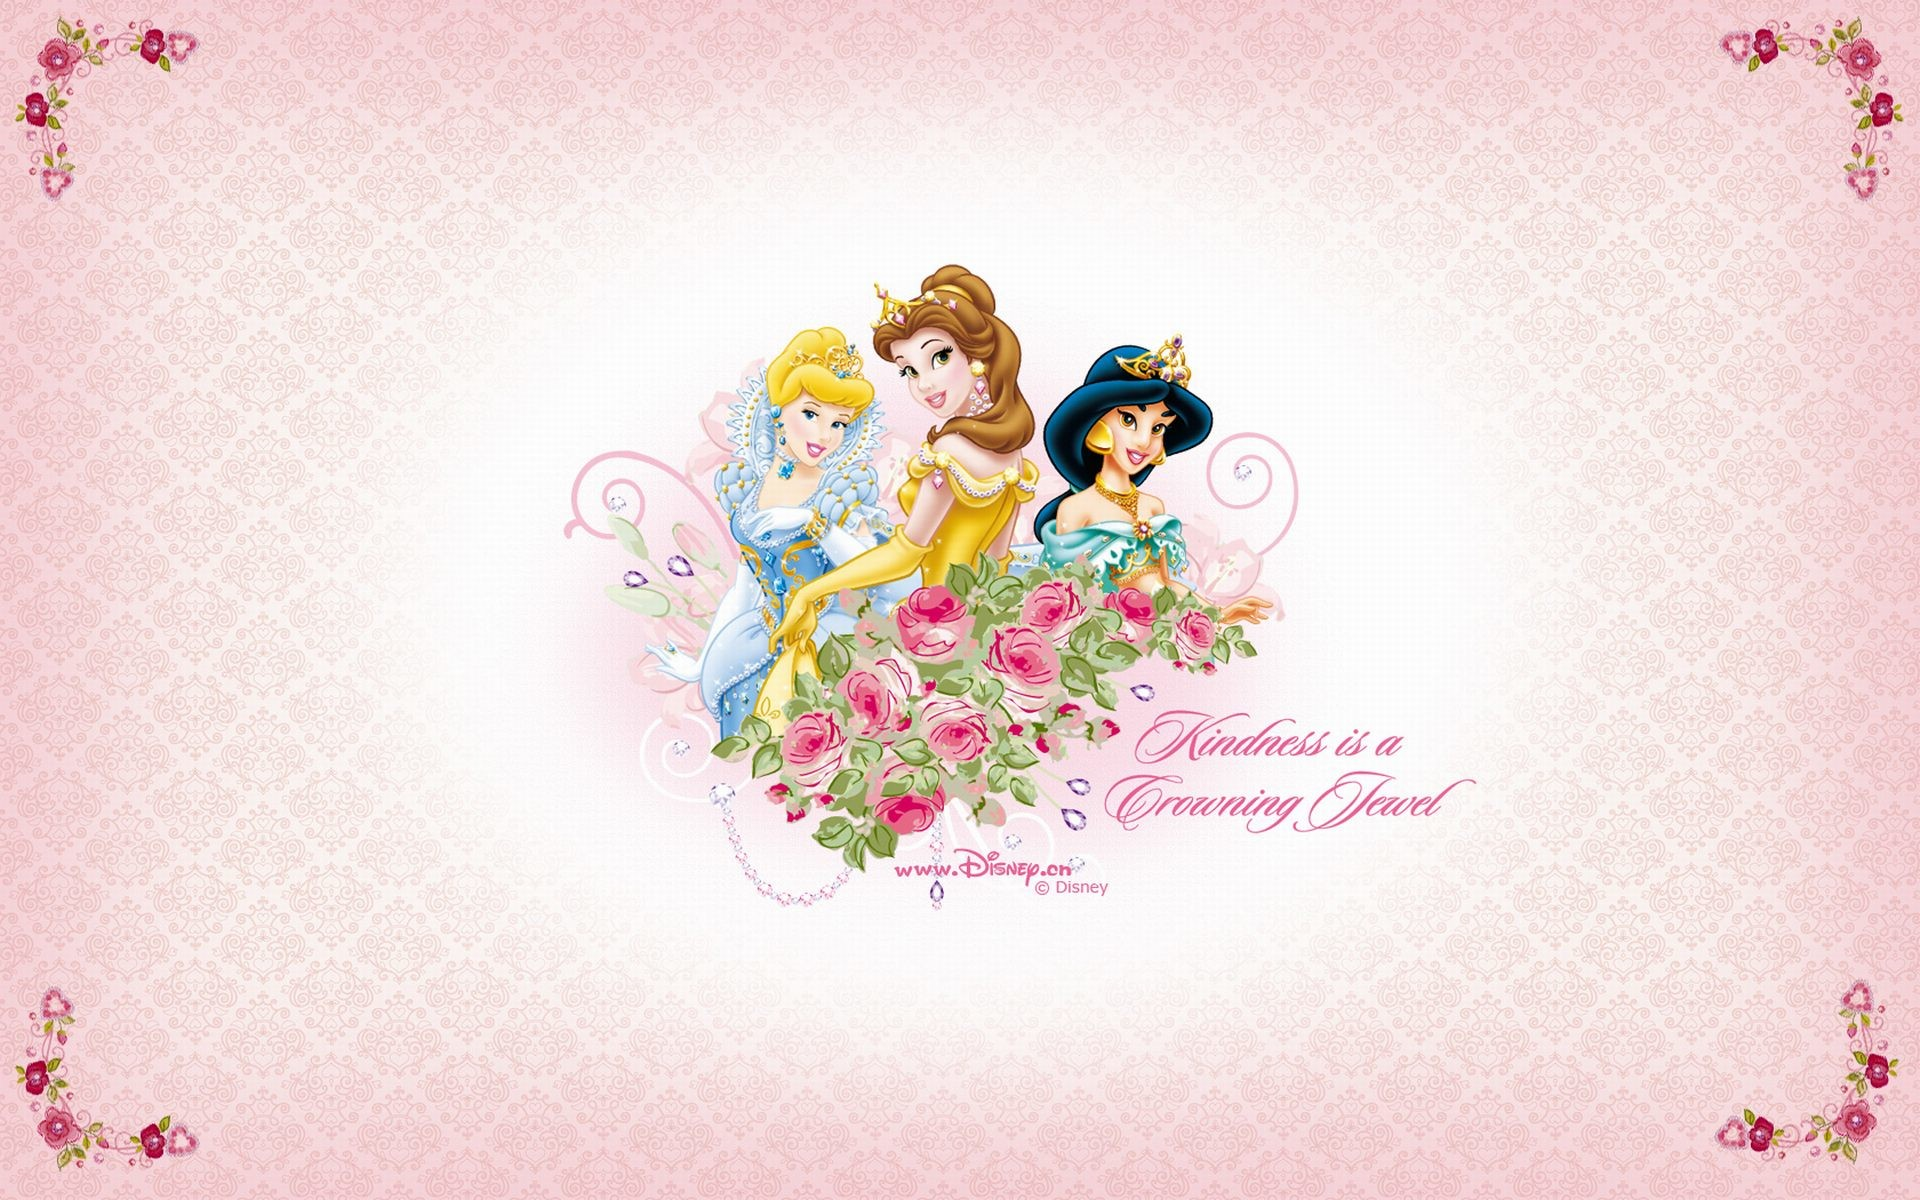 Disney princess wallpapers 66 images 1920x1200 disney princess high definition thecheapjerseys Choice Image